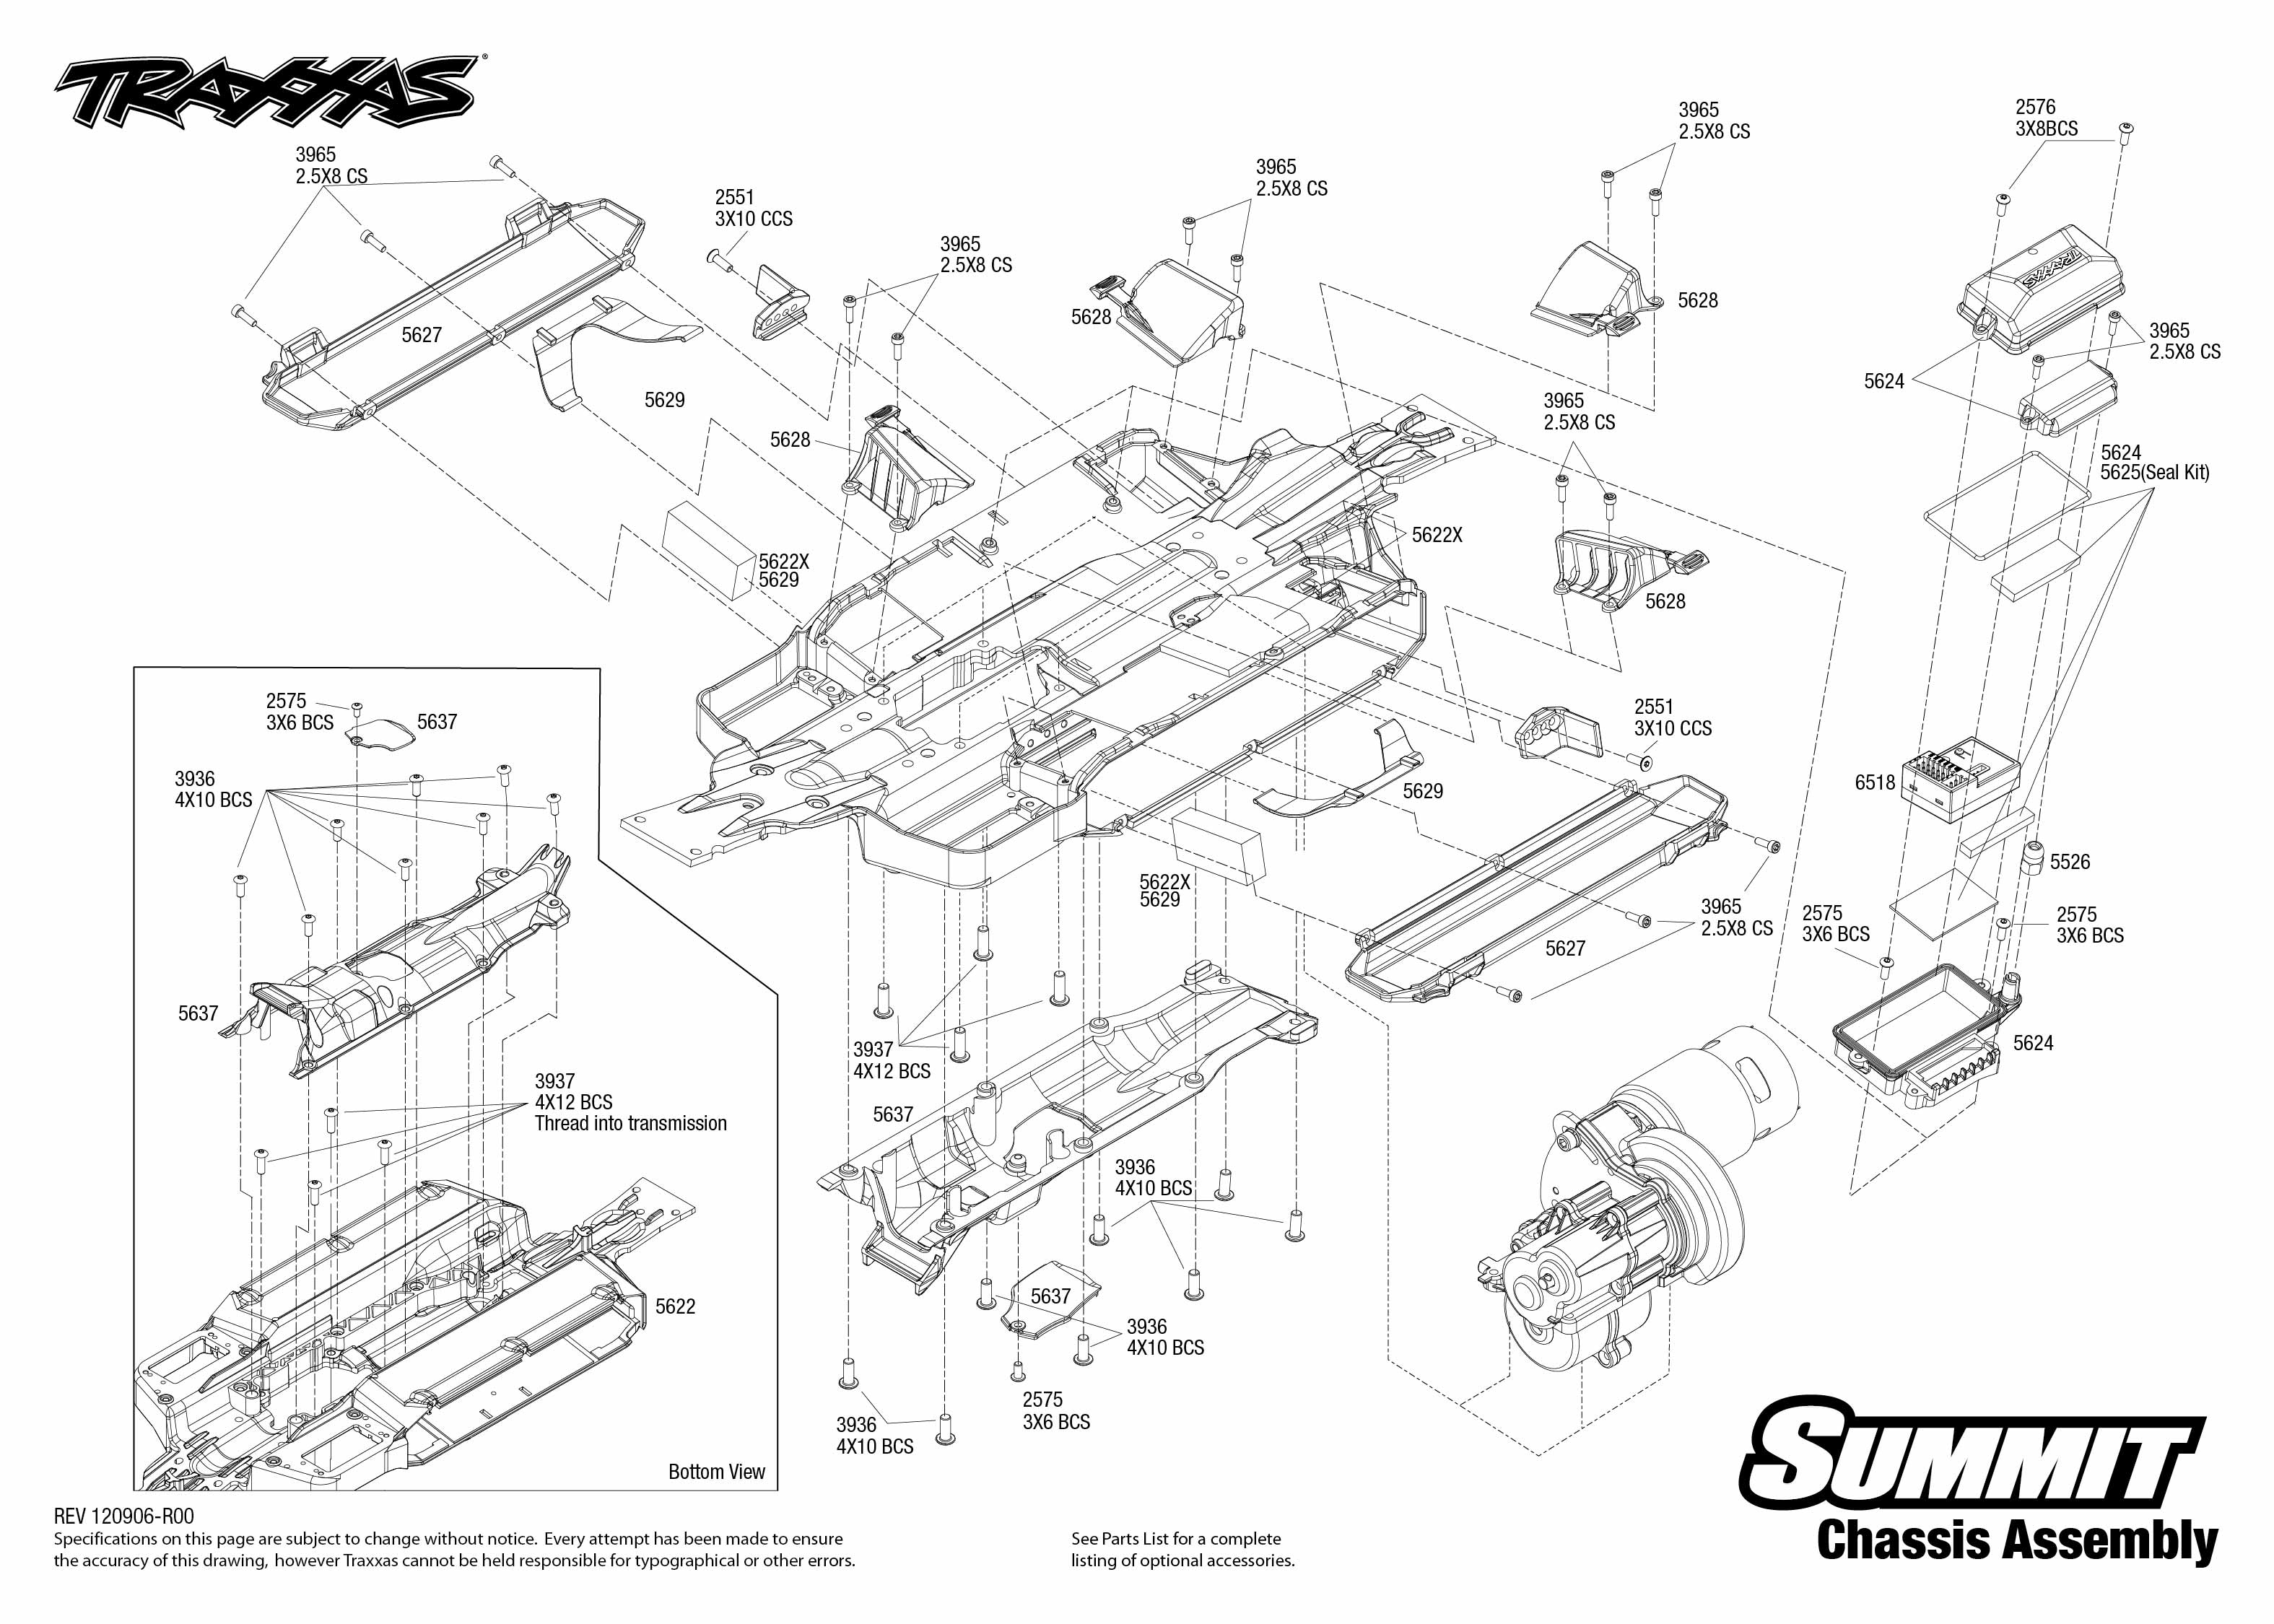 5607 120907 Chassis traxxas 1 10 scale summit 4wd extreme terrain monster truck 5607l traxxas evx 2 wiring diagram at readyjetset.co